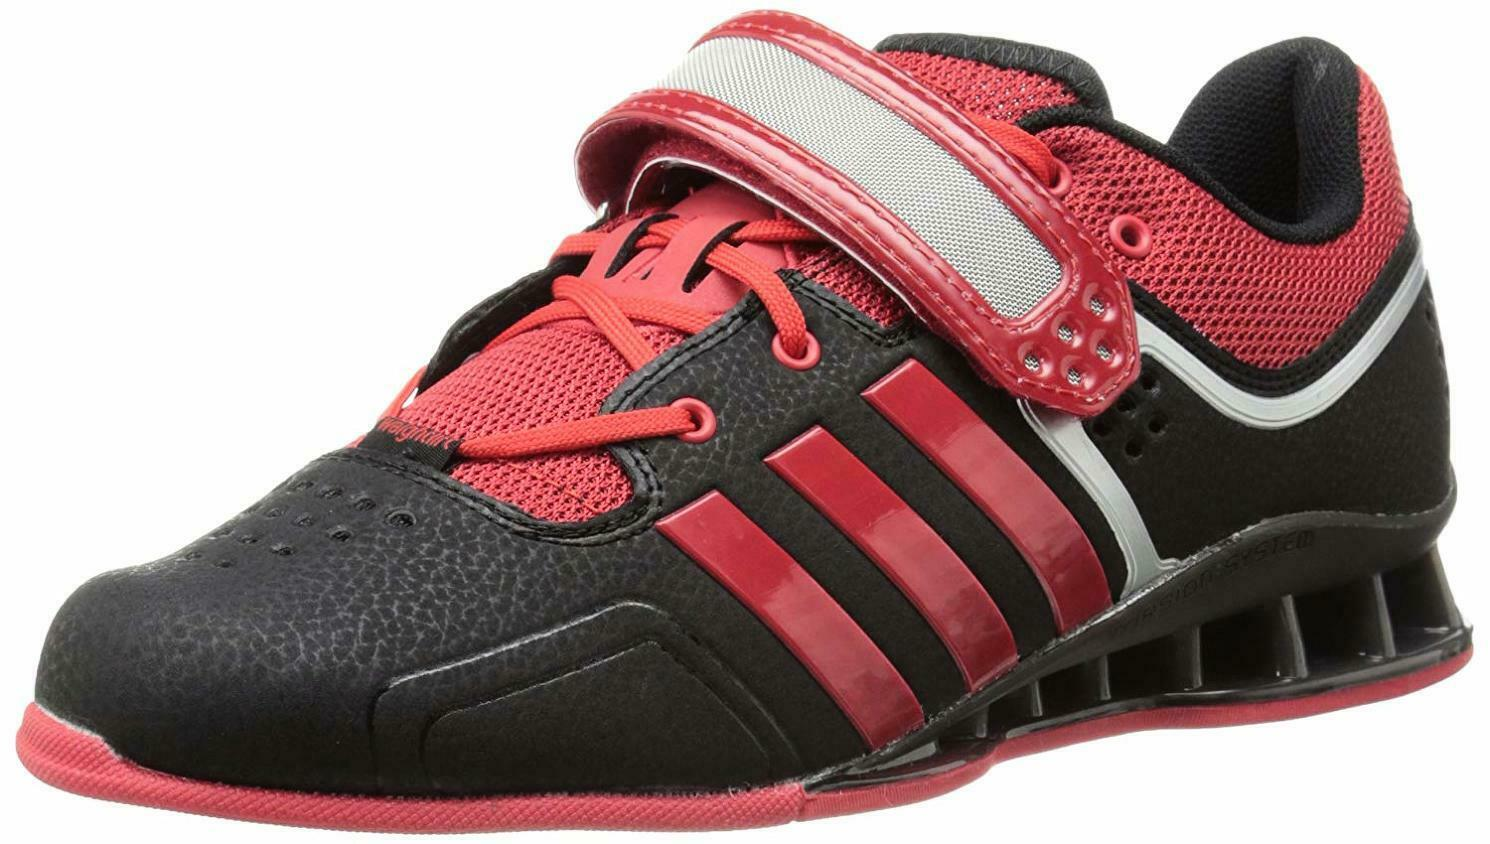 Adidas Men's Adipower Weightlift shoes shoes shoes - Choose SZ color d32fc3